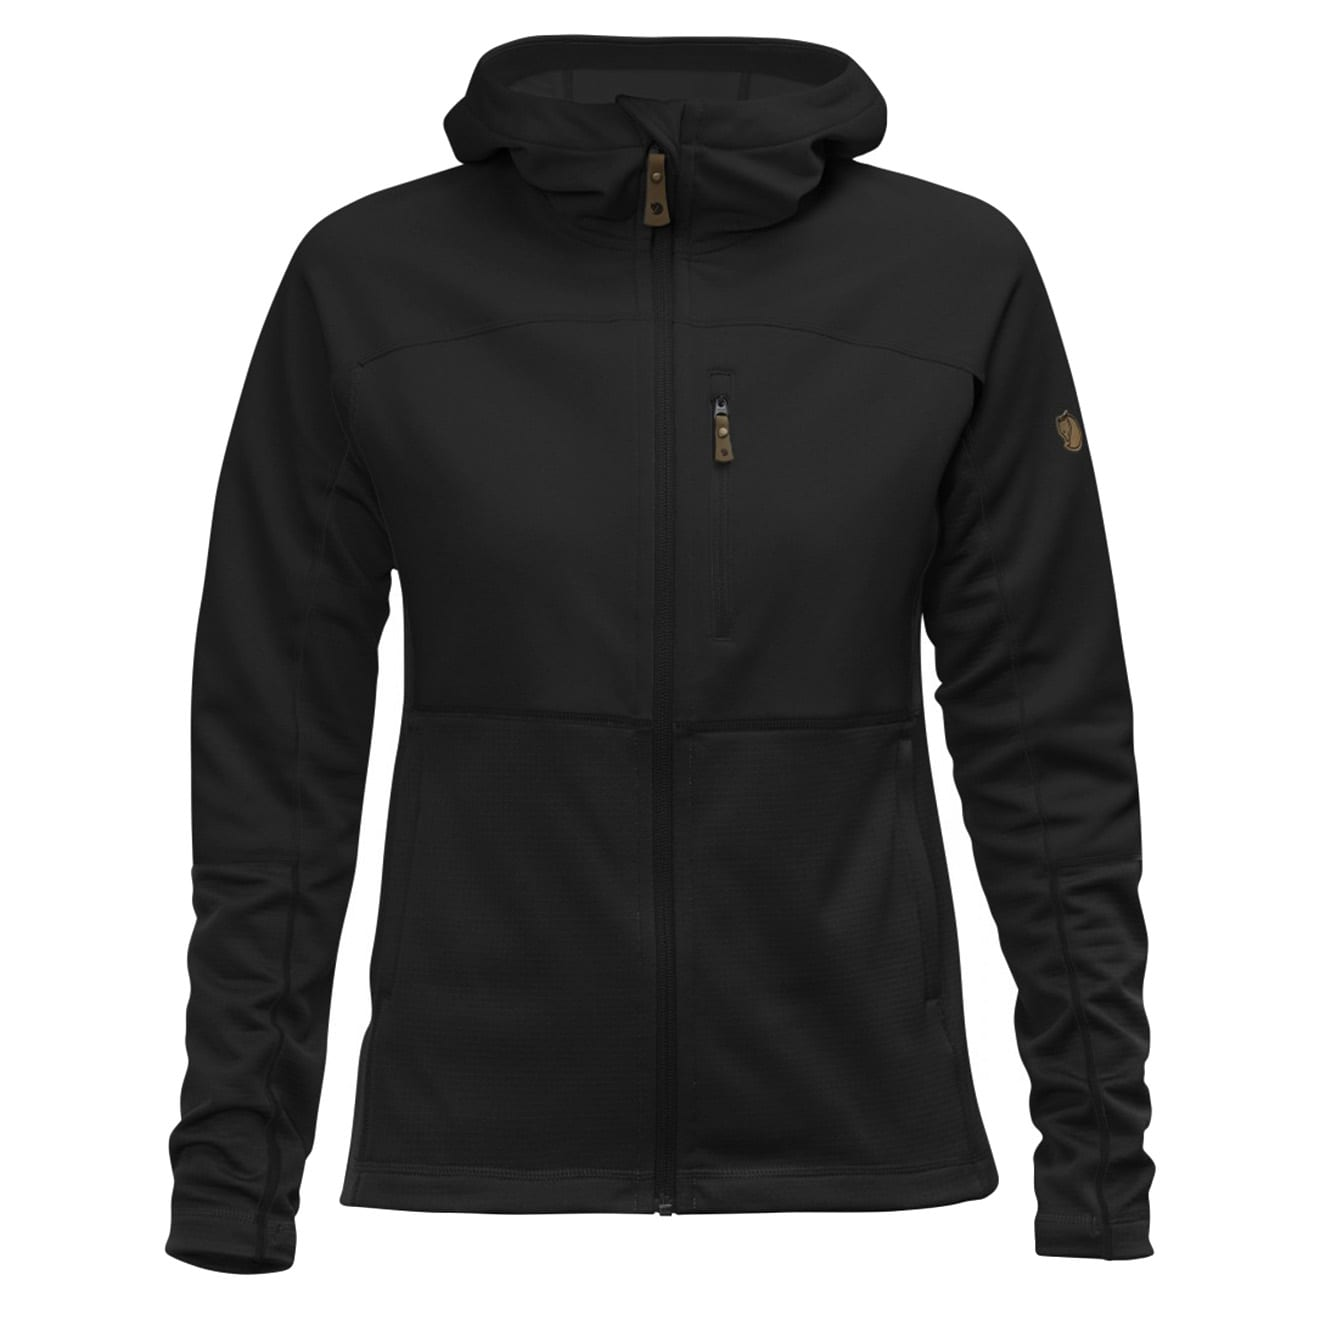 Women s Outdoor Fleeces - The Sporting Lodge 3547a1c7f0